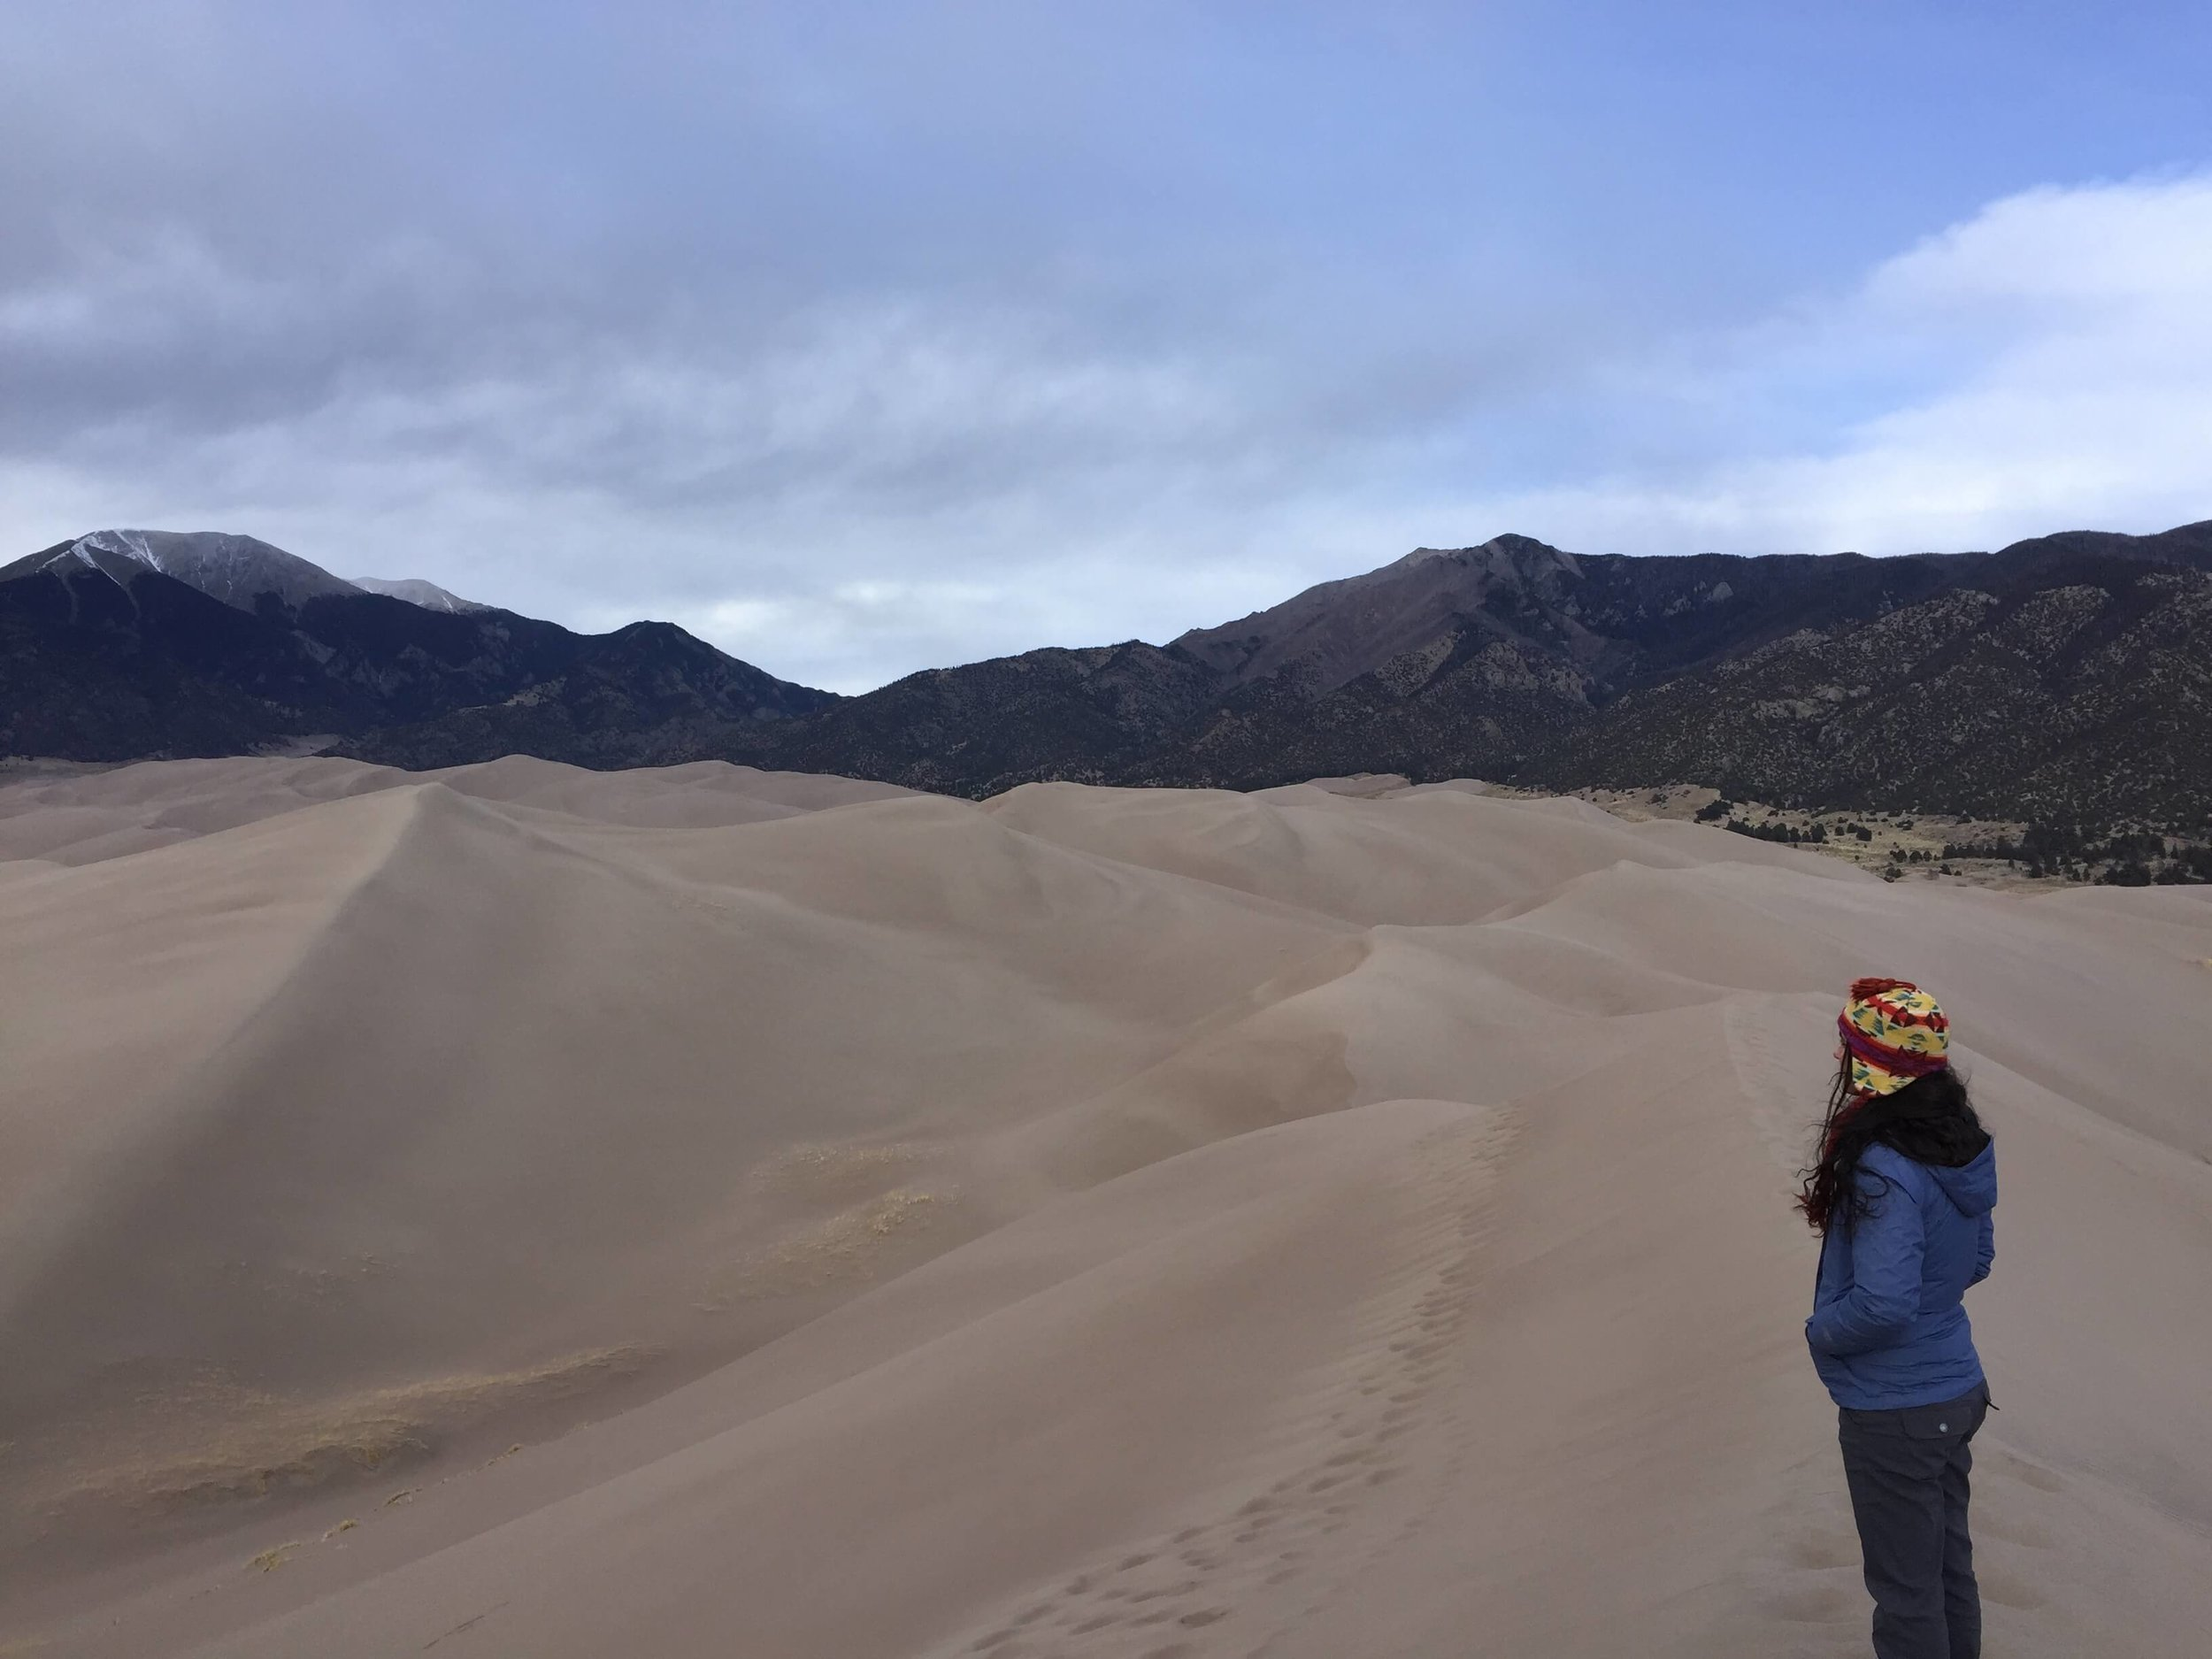 Peering from the top of High Dune in Great Sand Dunes National Park and Preserve